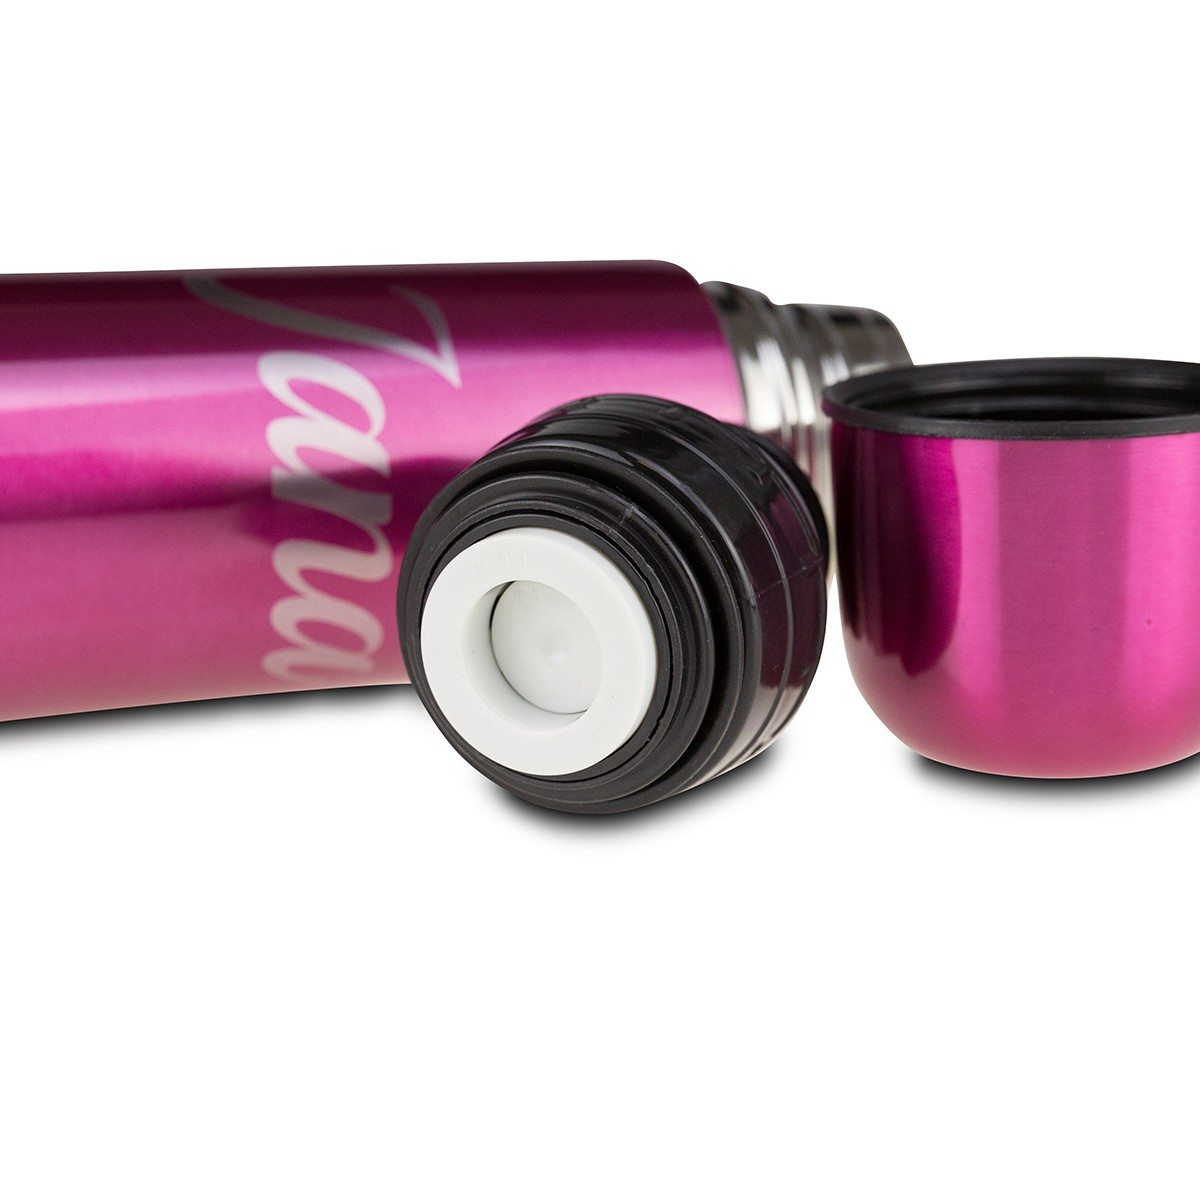 Thermos flashy personnalisé